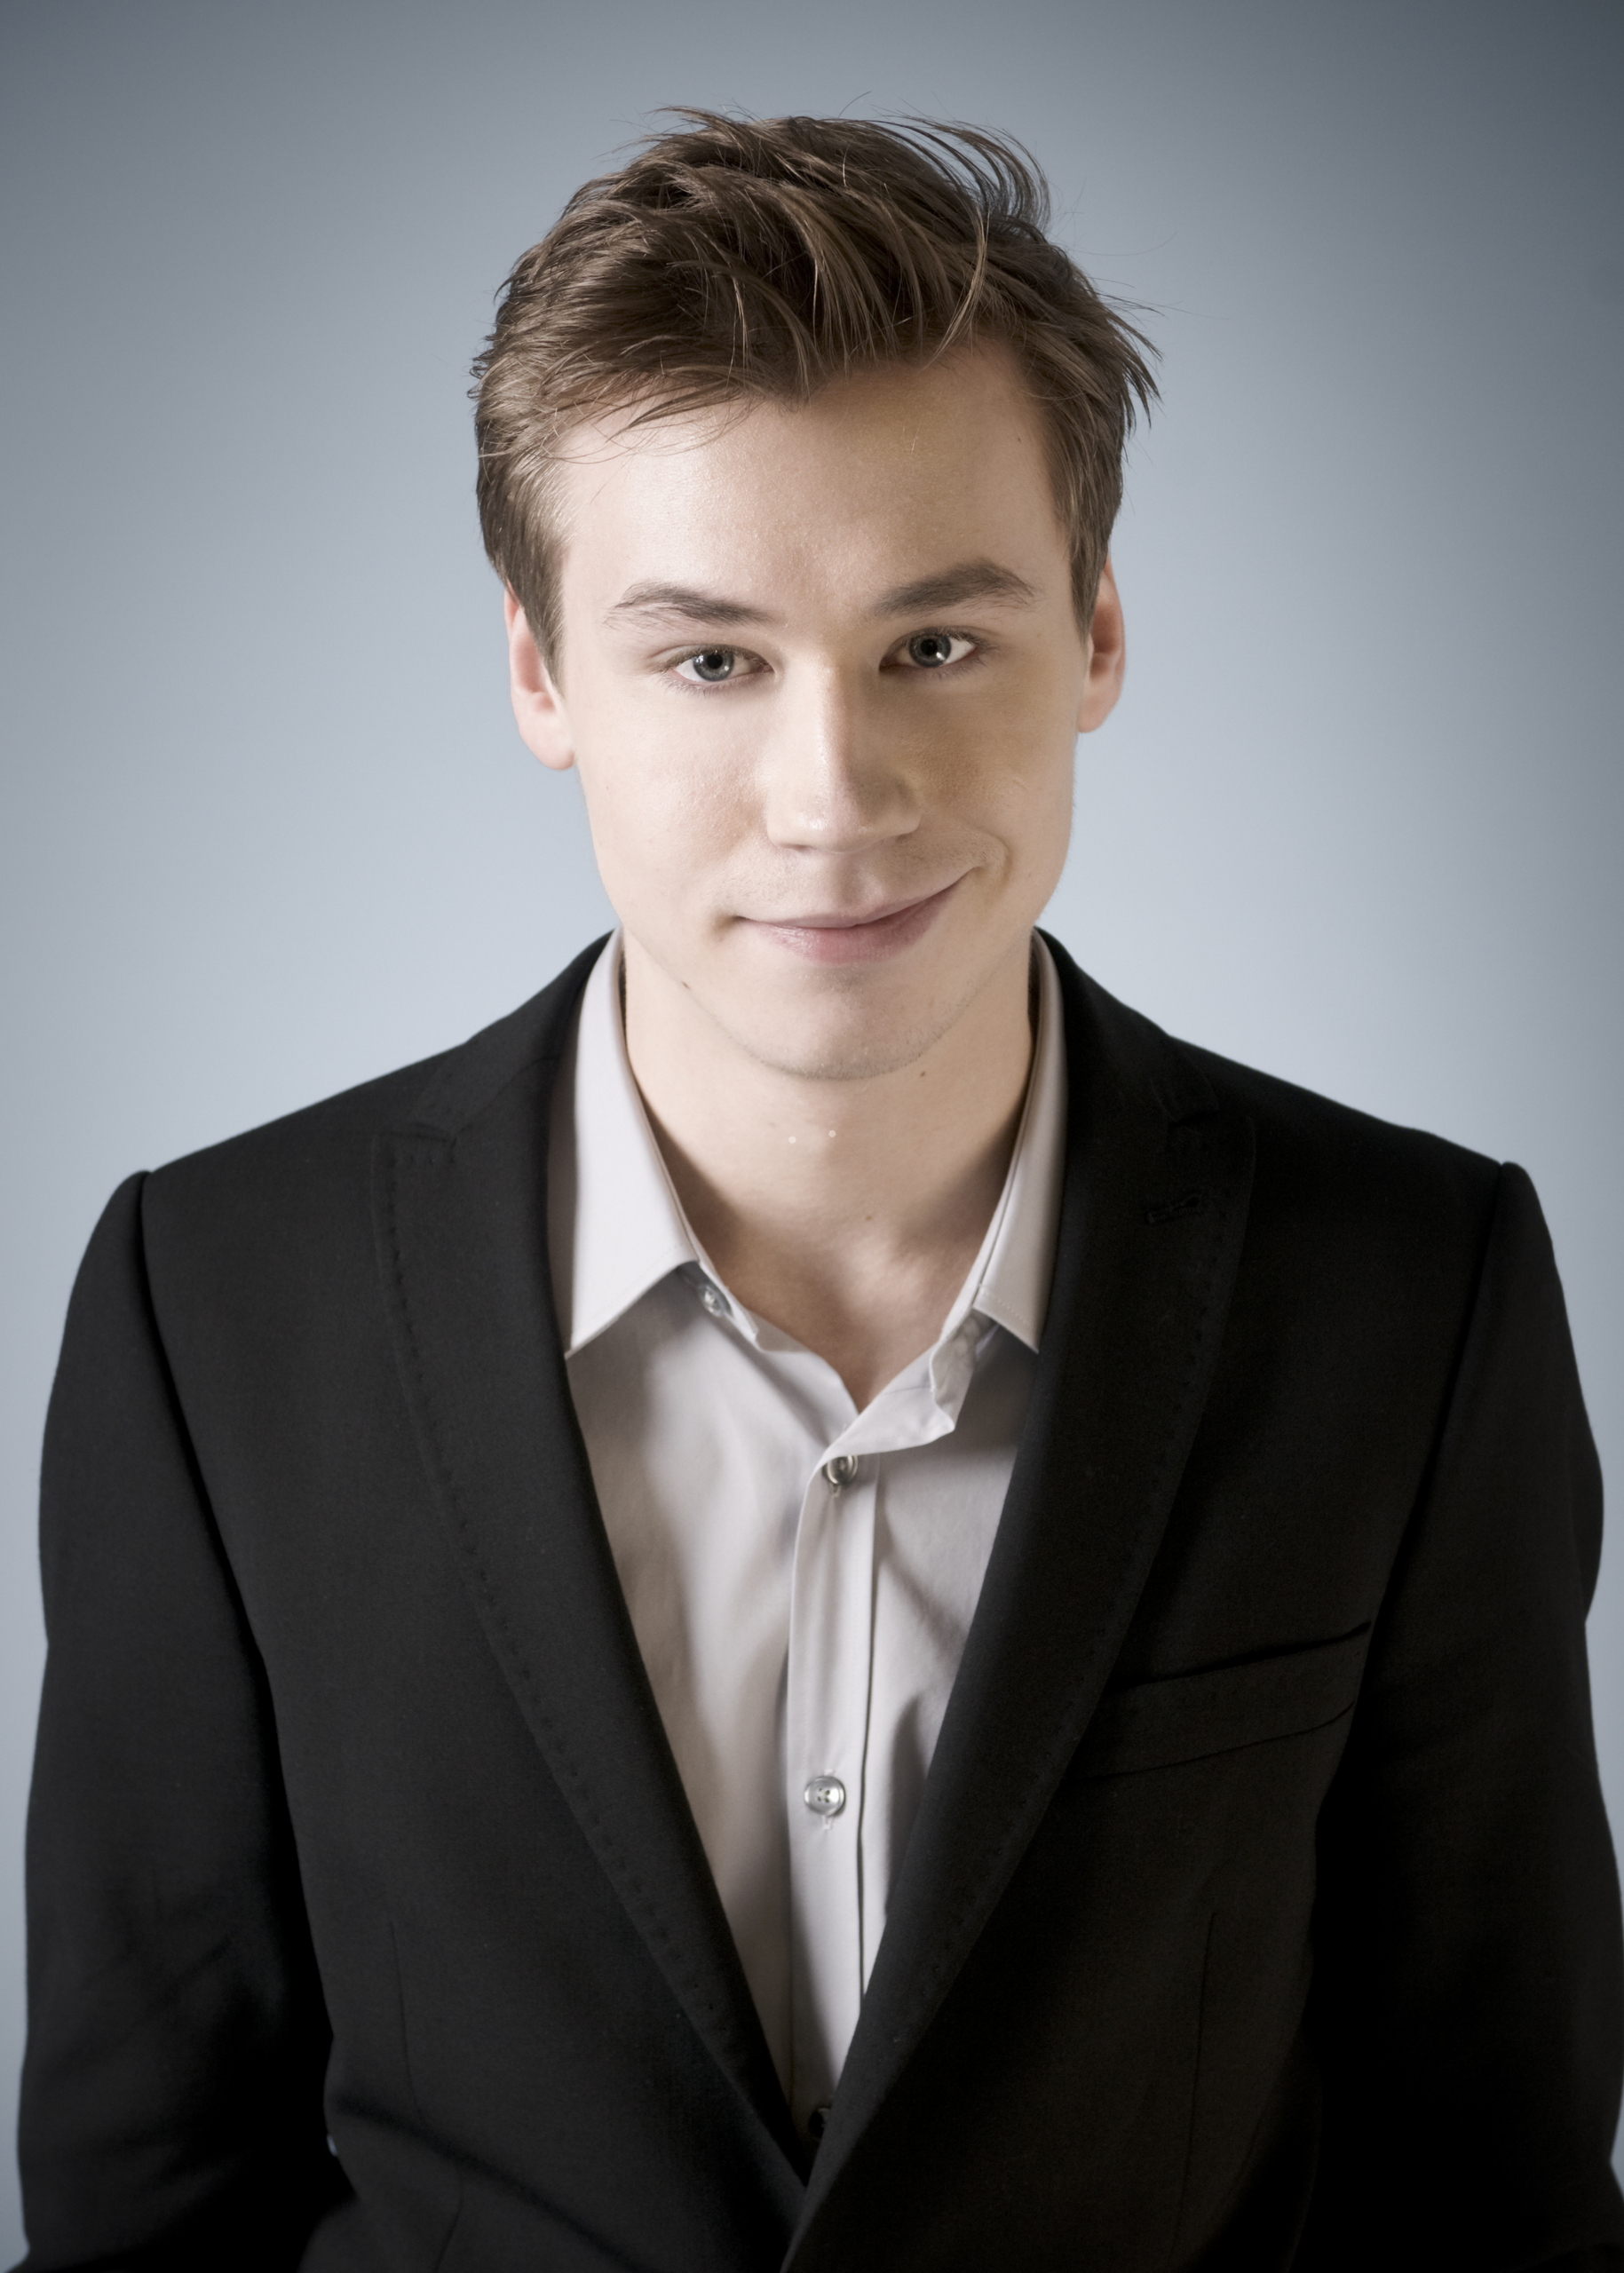 David Kross earned a  million dollar salary - leaving the net worth at 1 million in 2018